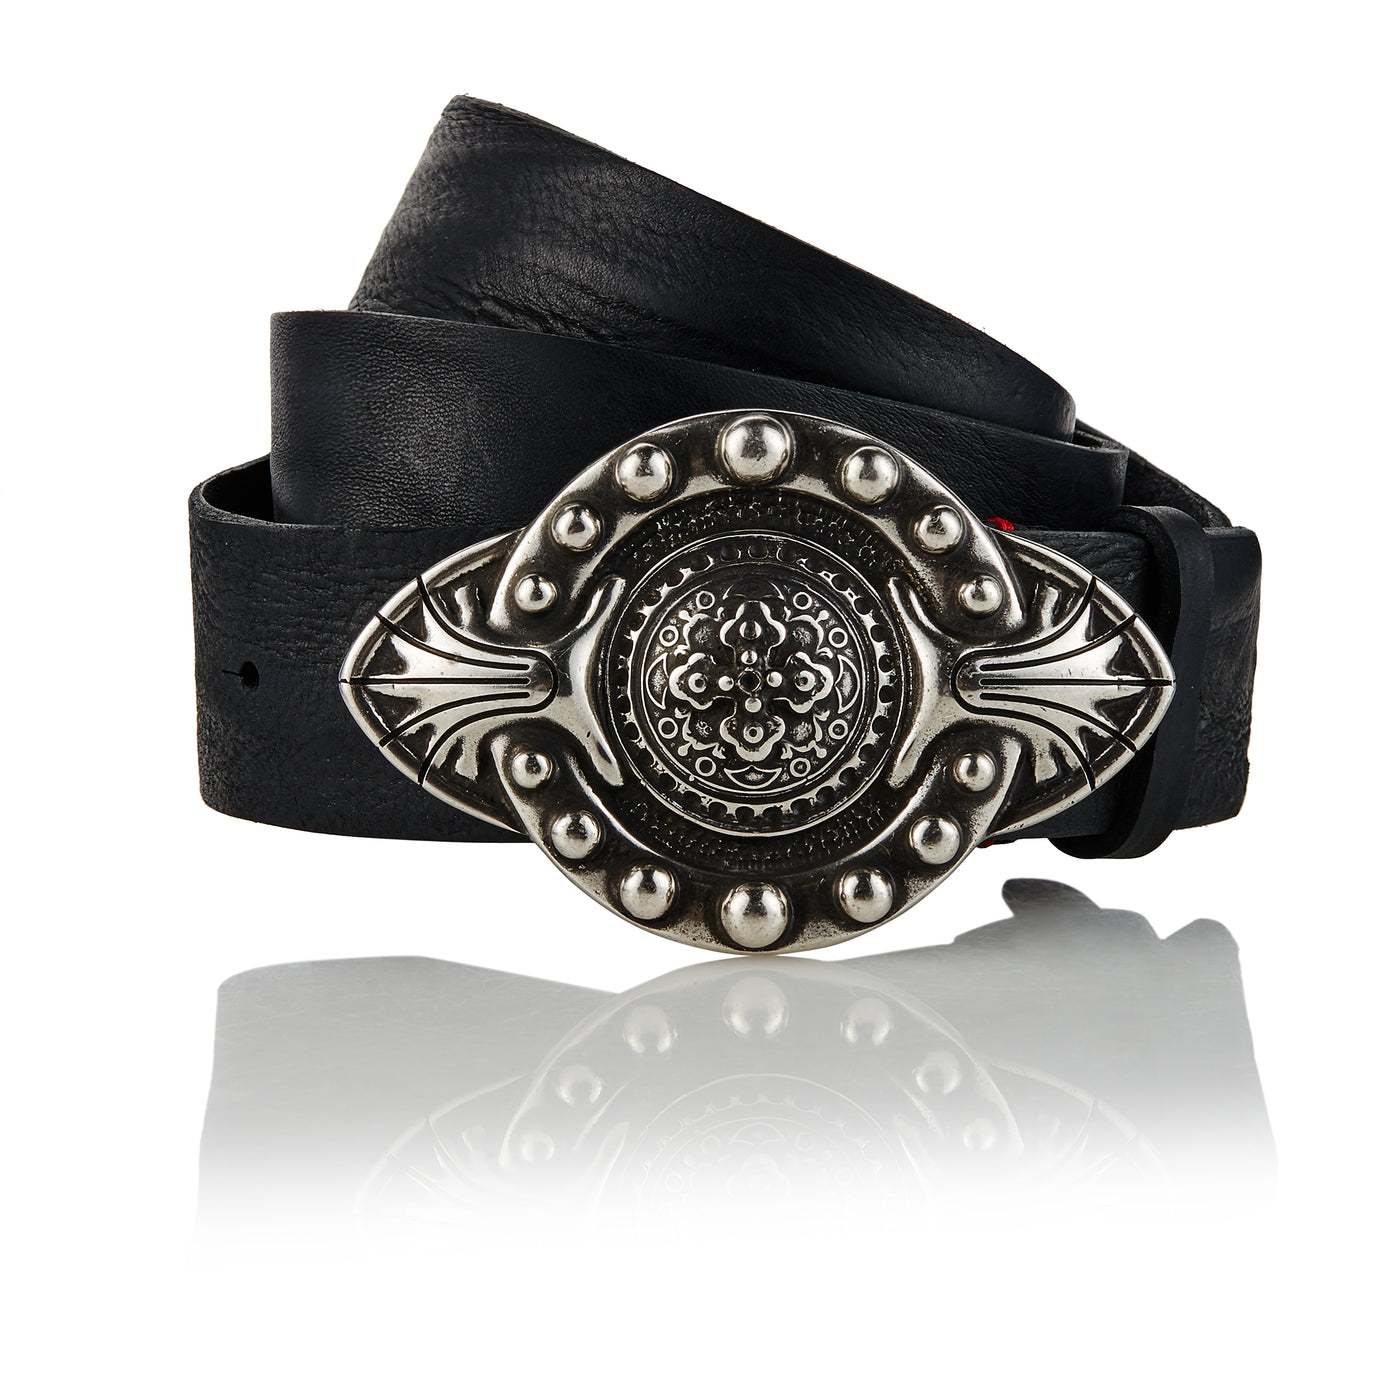 Jenische - Handcrafted Italian Belt / Black